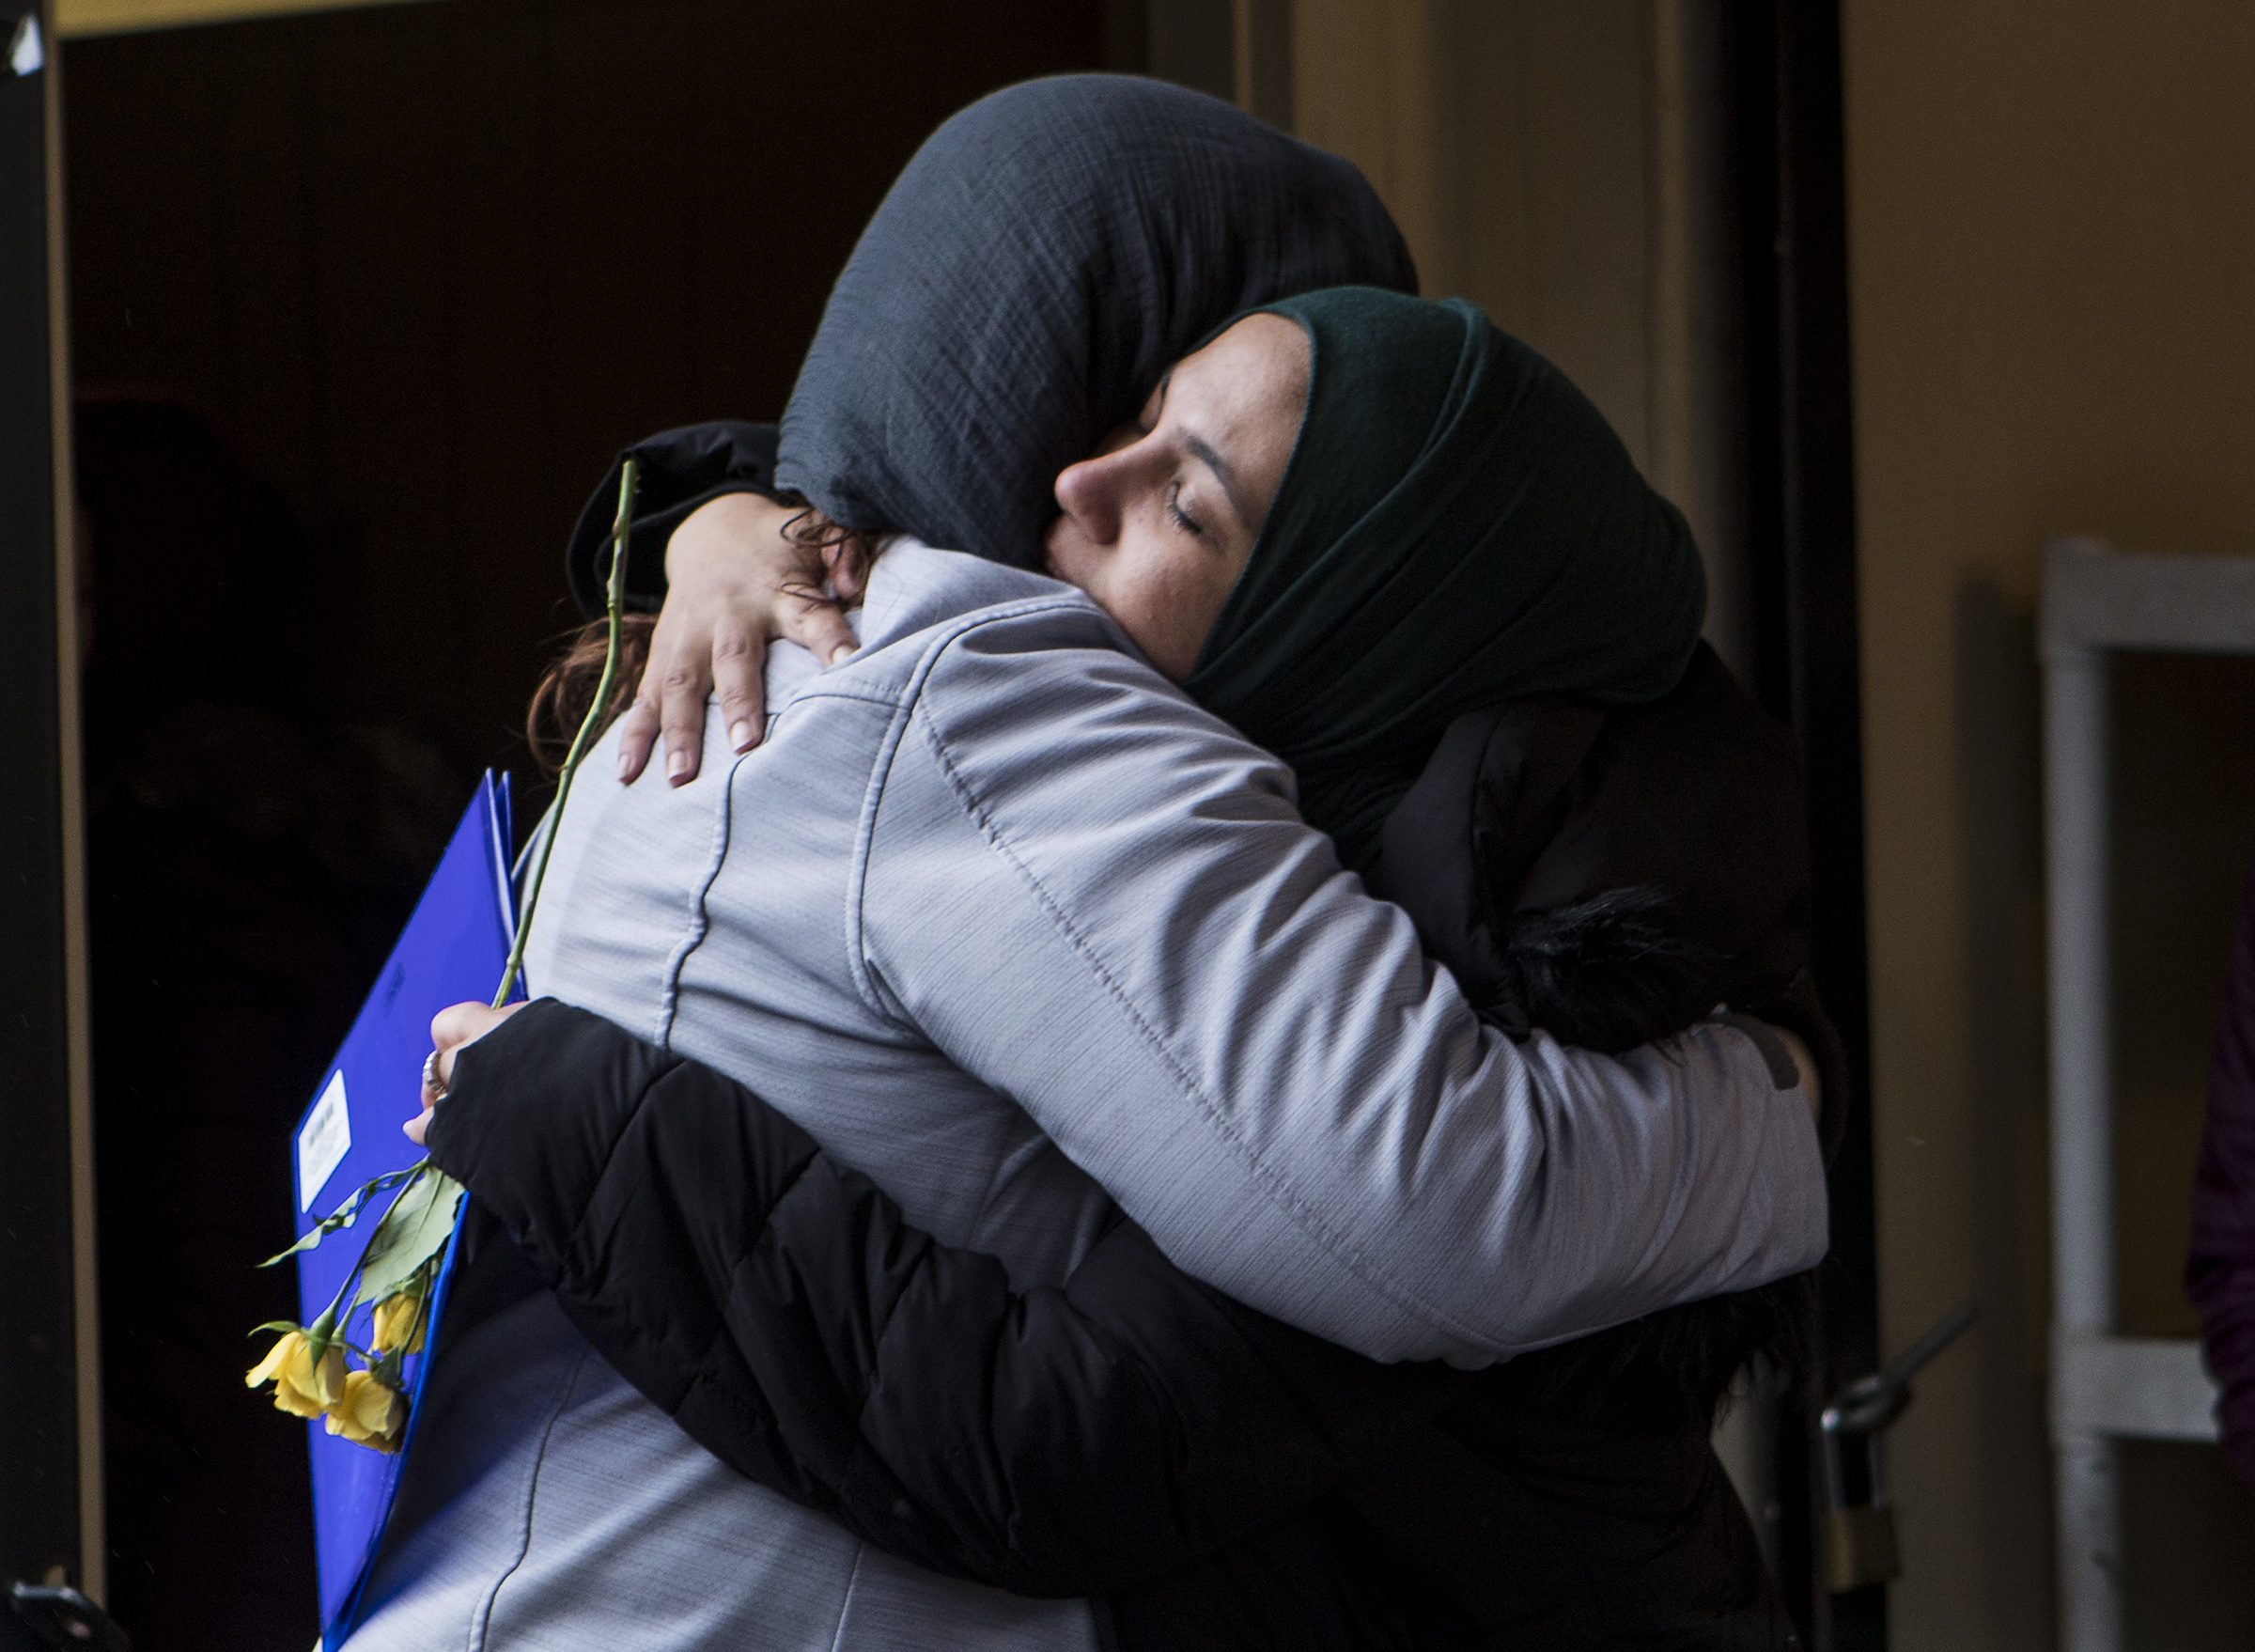 Amber Iqbal, of Lexington, right, receives a hug from interfaith supporter Carla Bradford, of Bedford, before entering the Islamic Center of Burlington for Jumu'ah on March 22, 2019